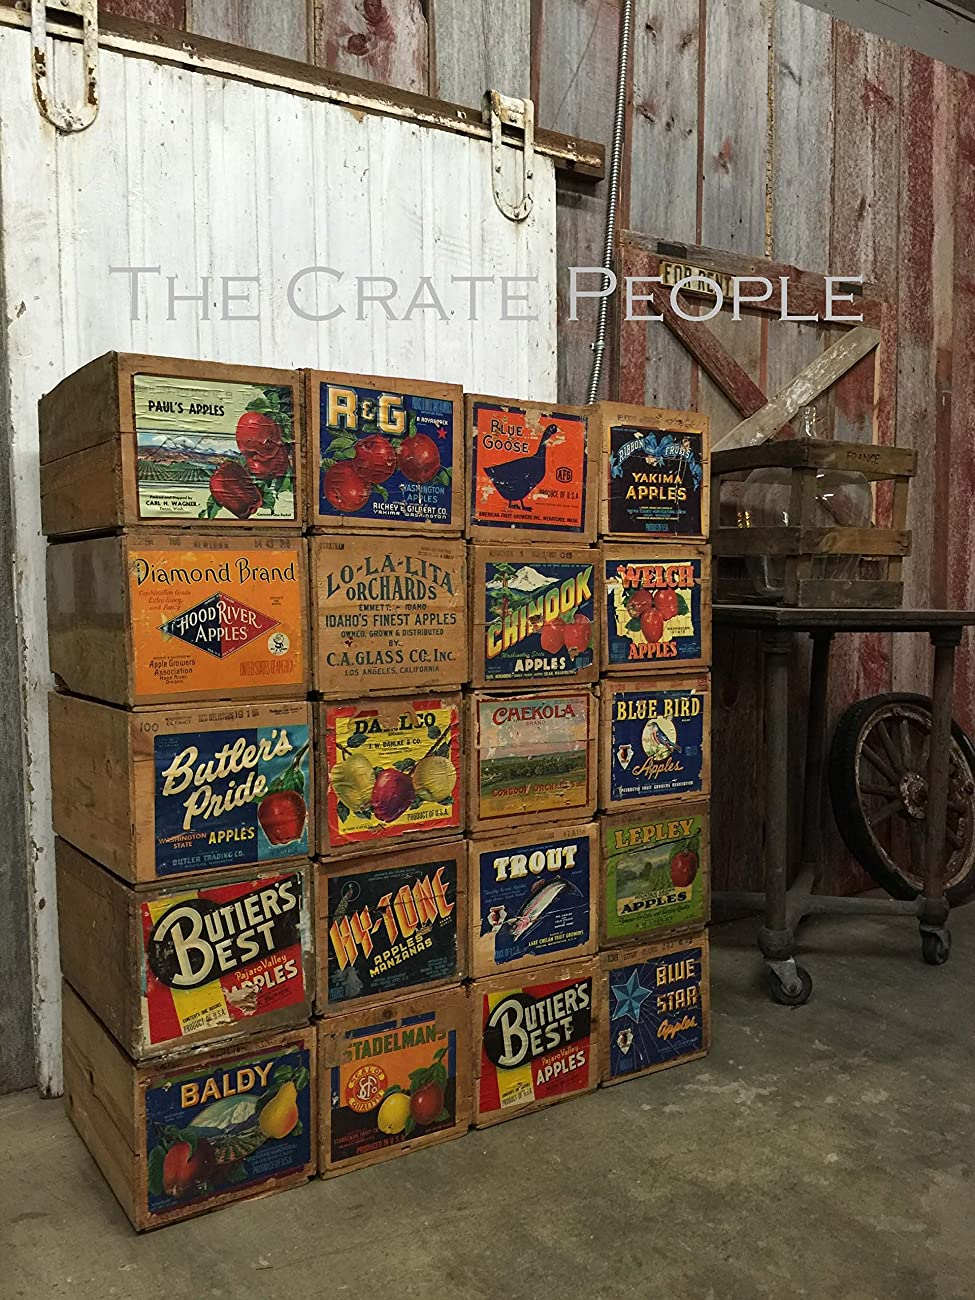 Vintage Wood Apple Crates circa 1940's - 50's - Colorful Old Labels HUNDREDS in stock	 3